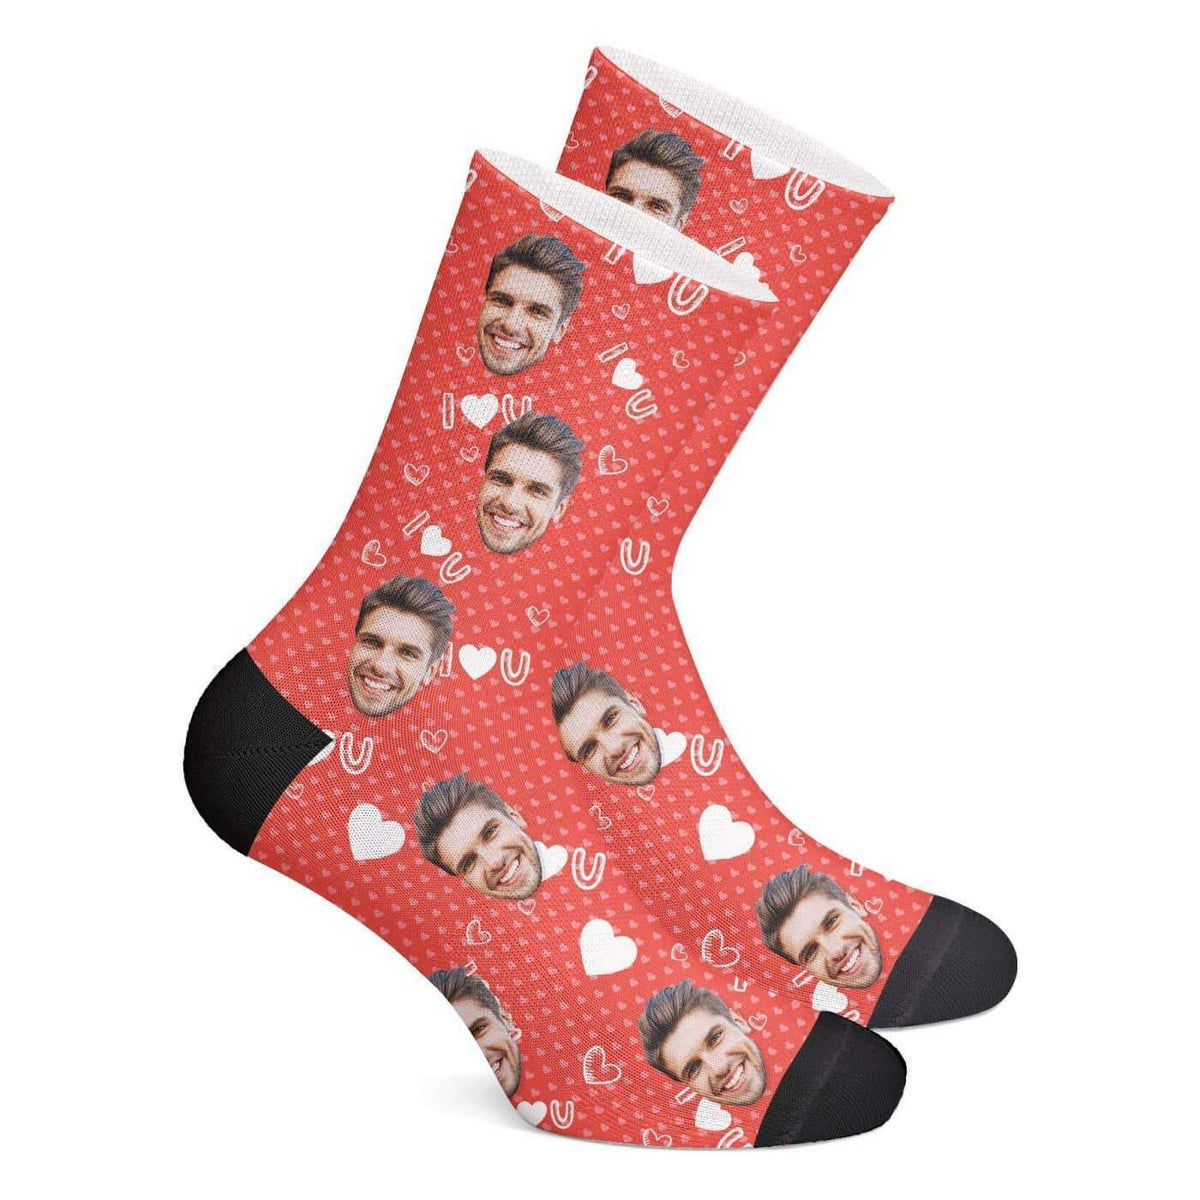 Custom Love Socks - Myfacesocksau